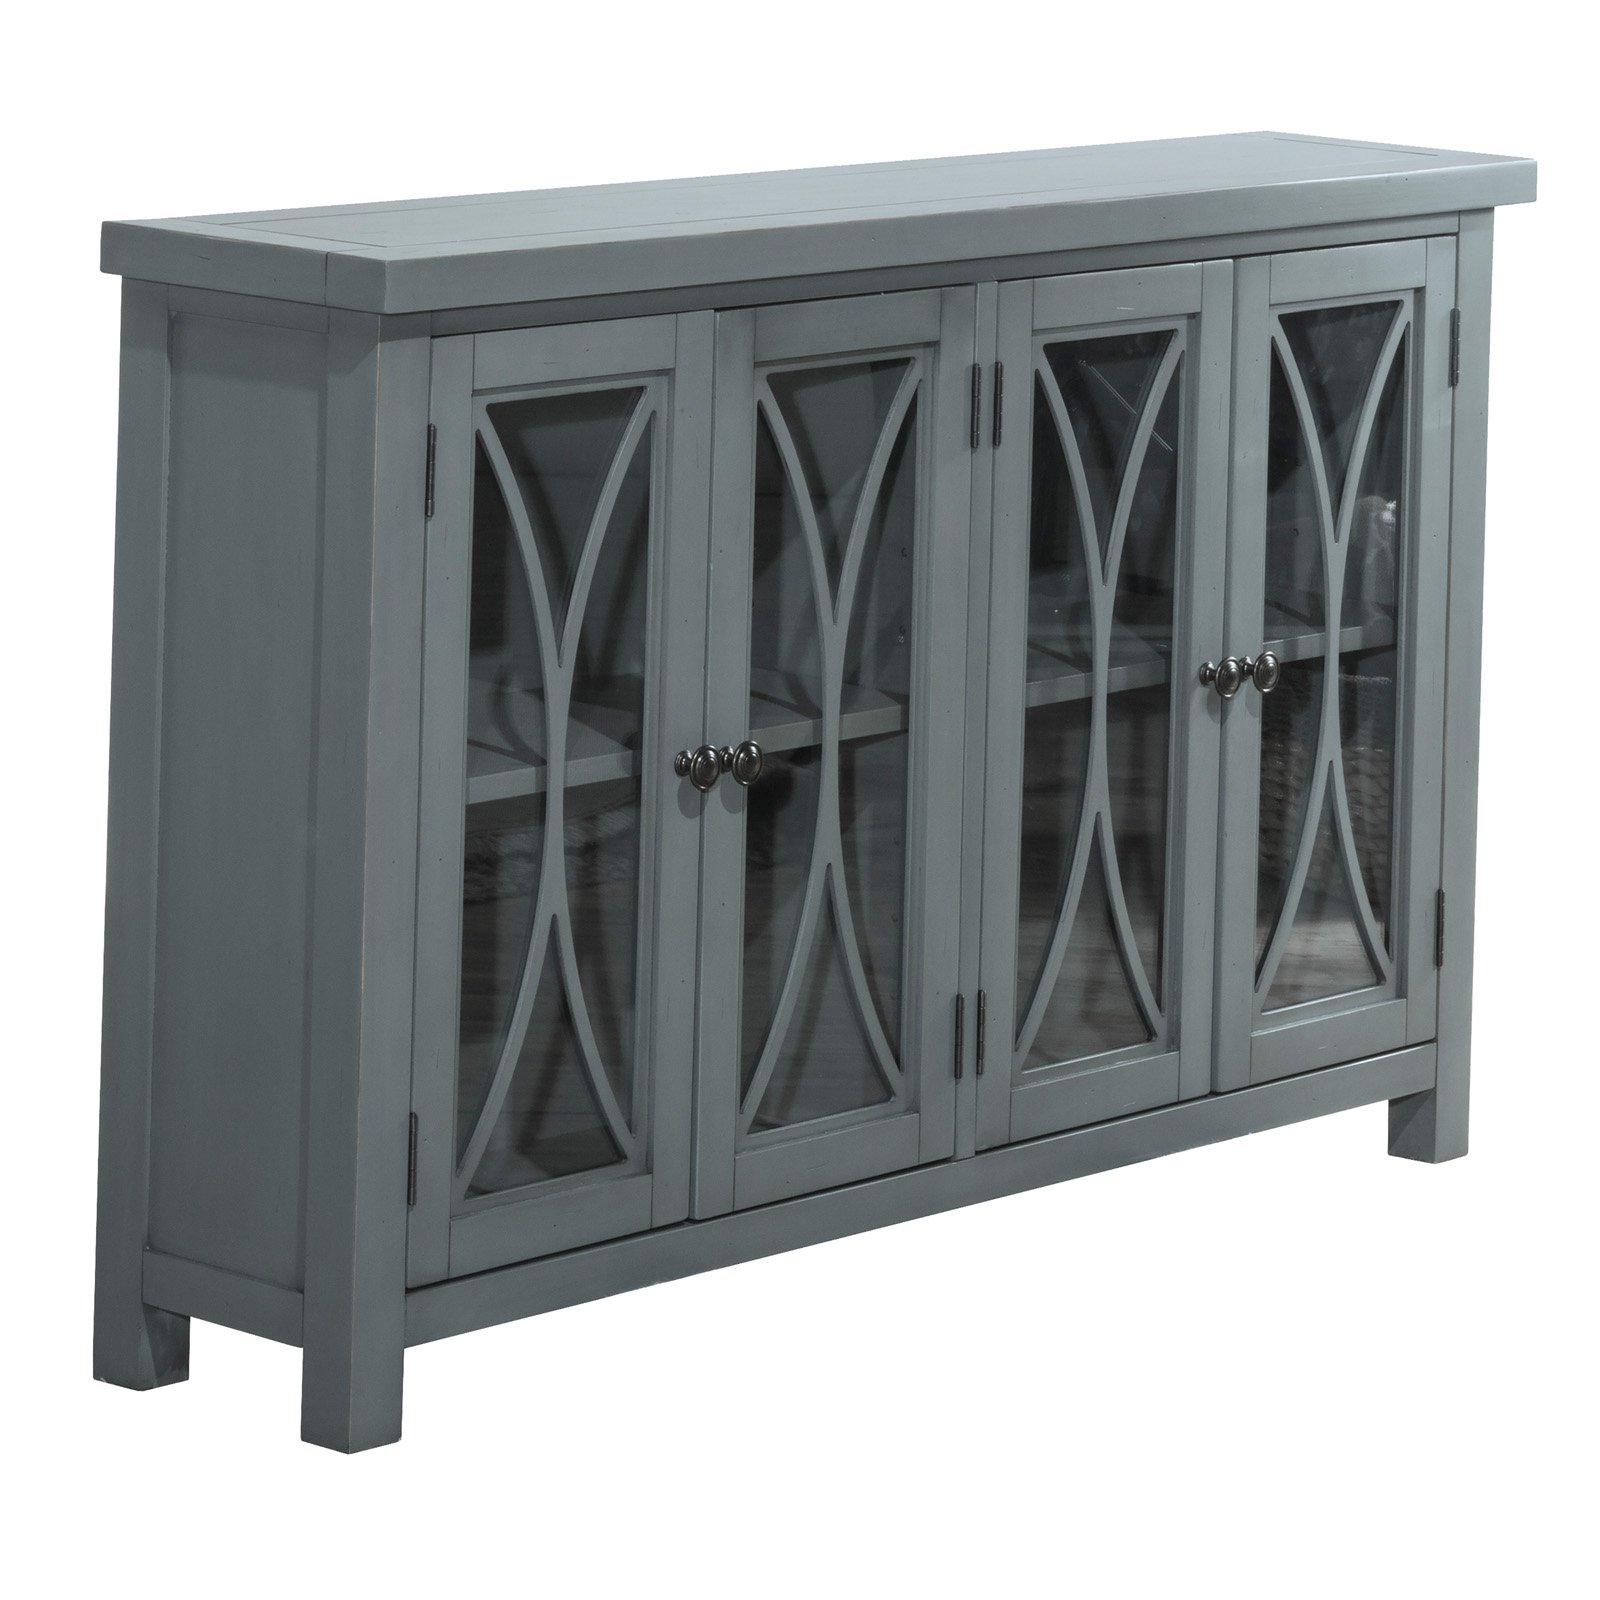 Hillsdale Furniture Bayside Four (4) Door Cabinet, Multiple Finishes by Hillsdale Furniture